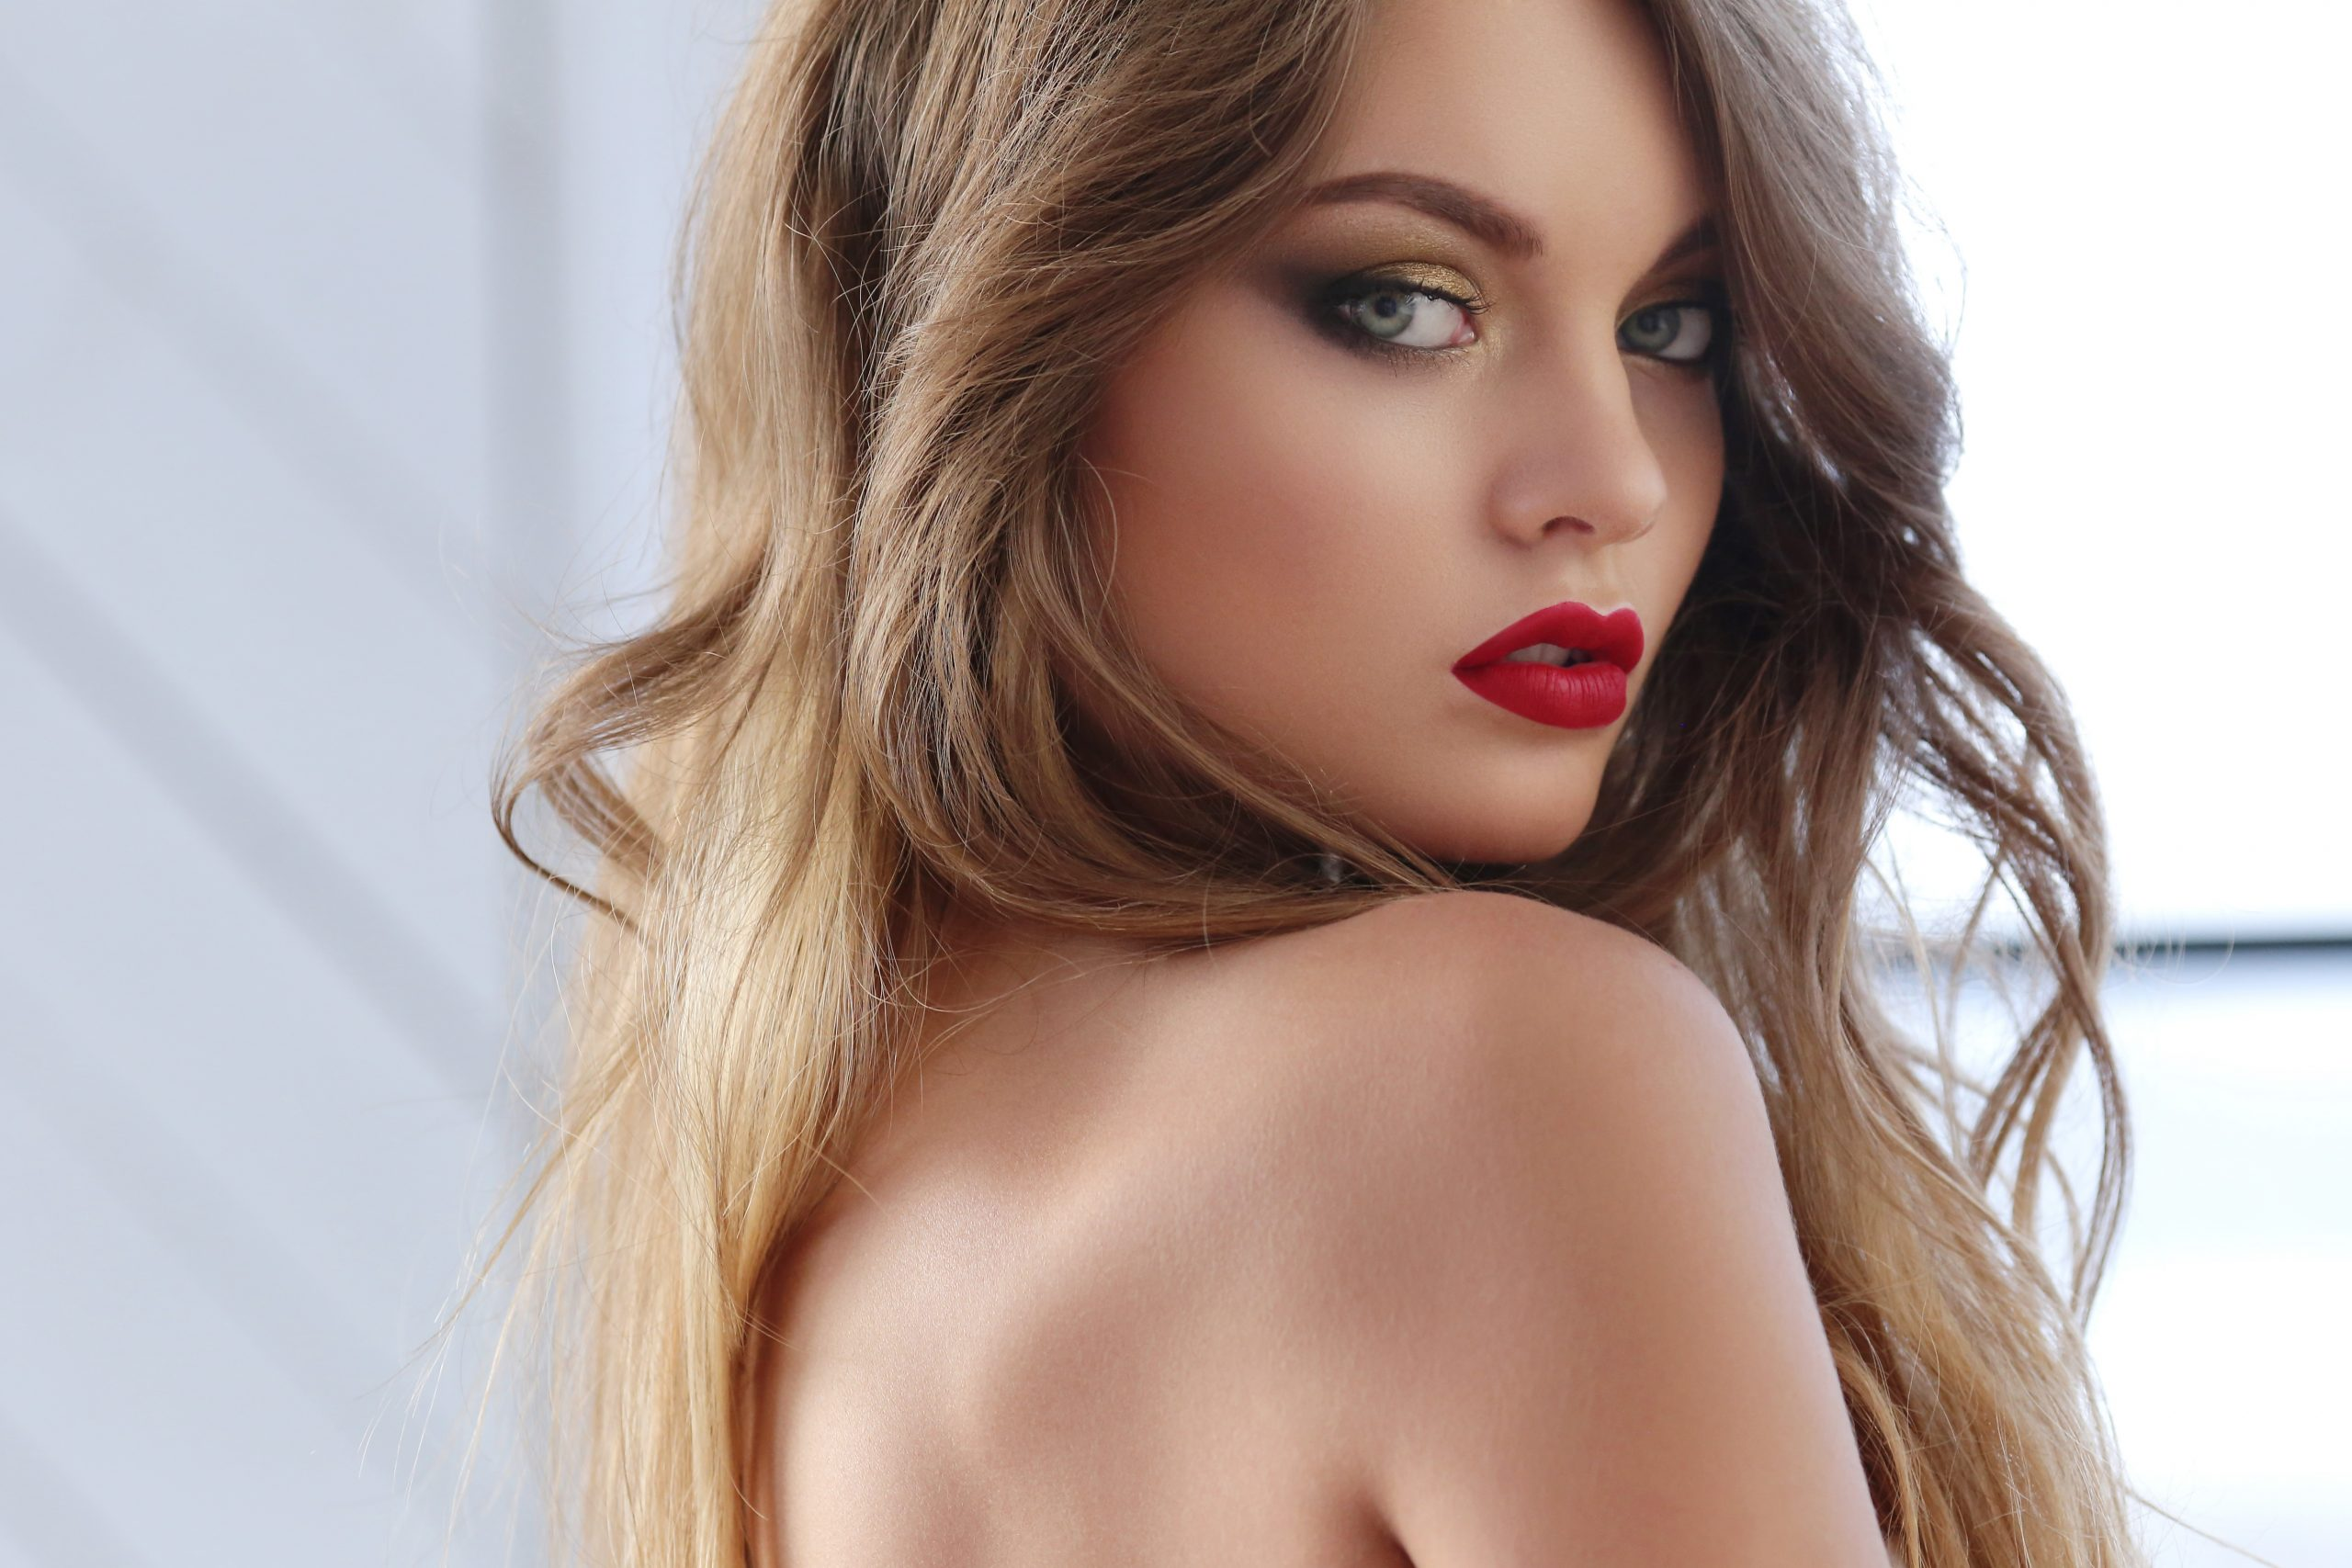 Beautiful woman with blonde hair and red lipstick